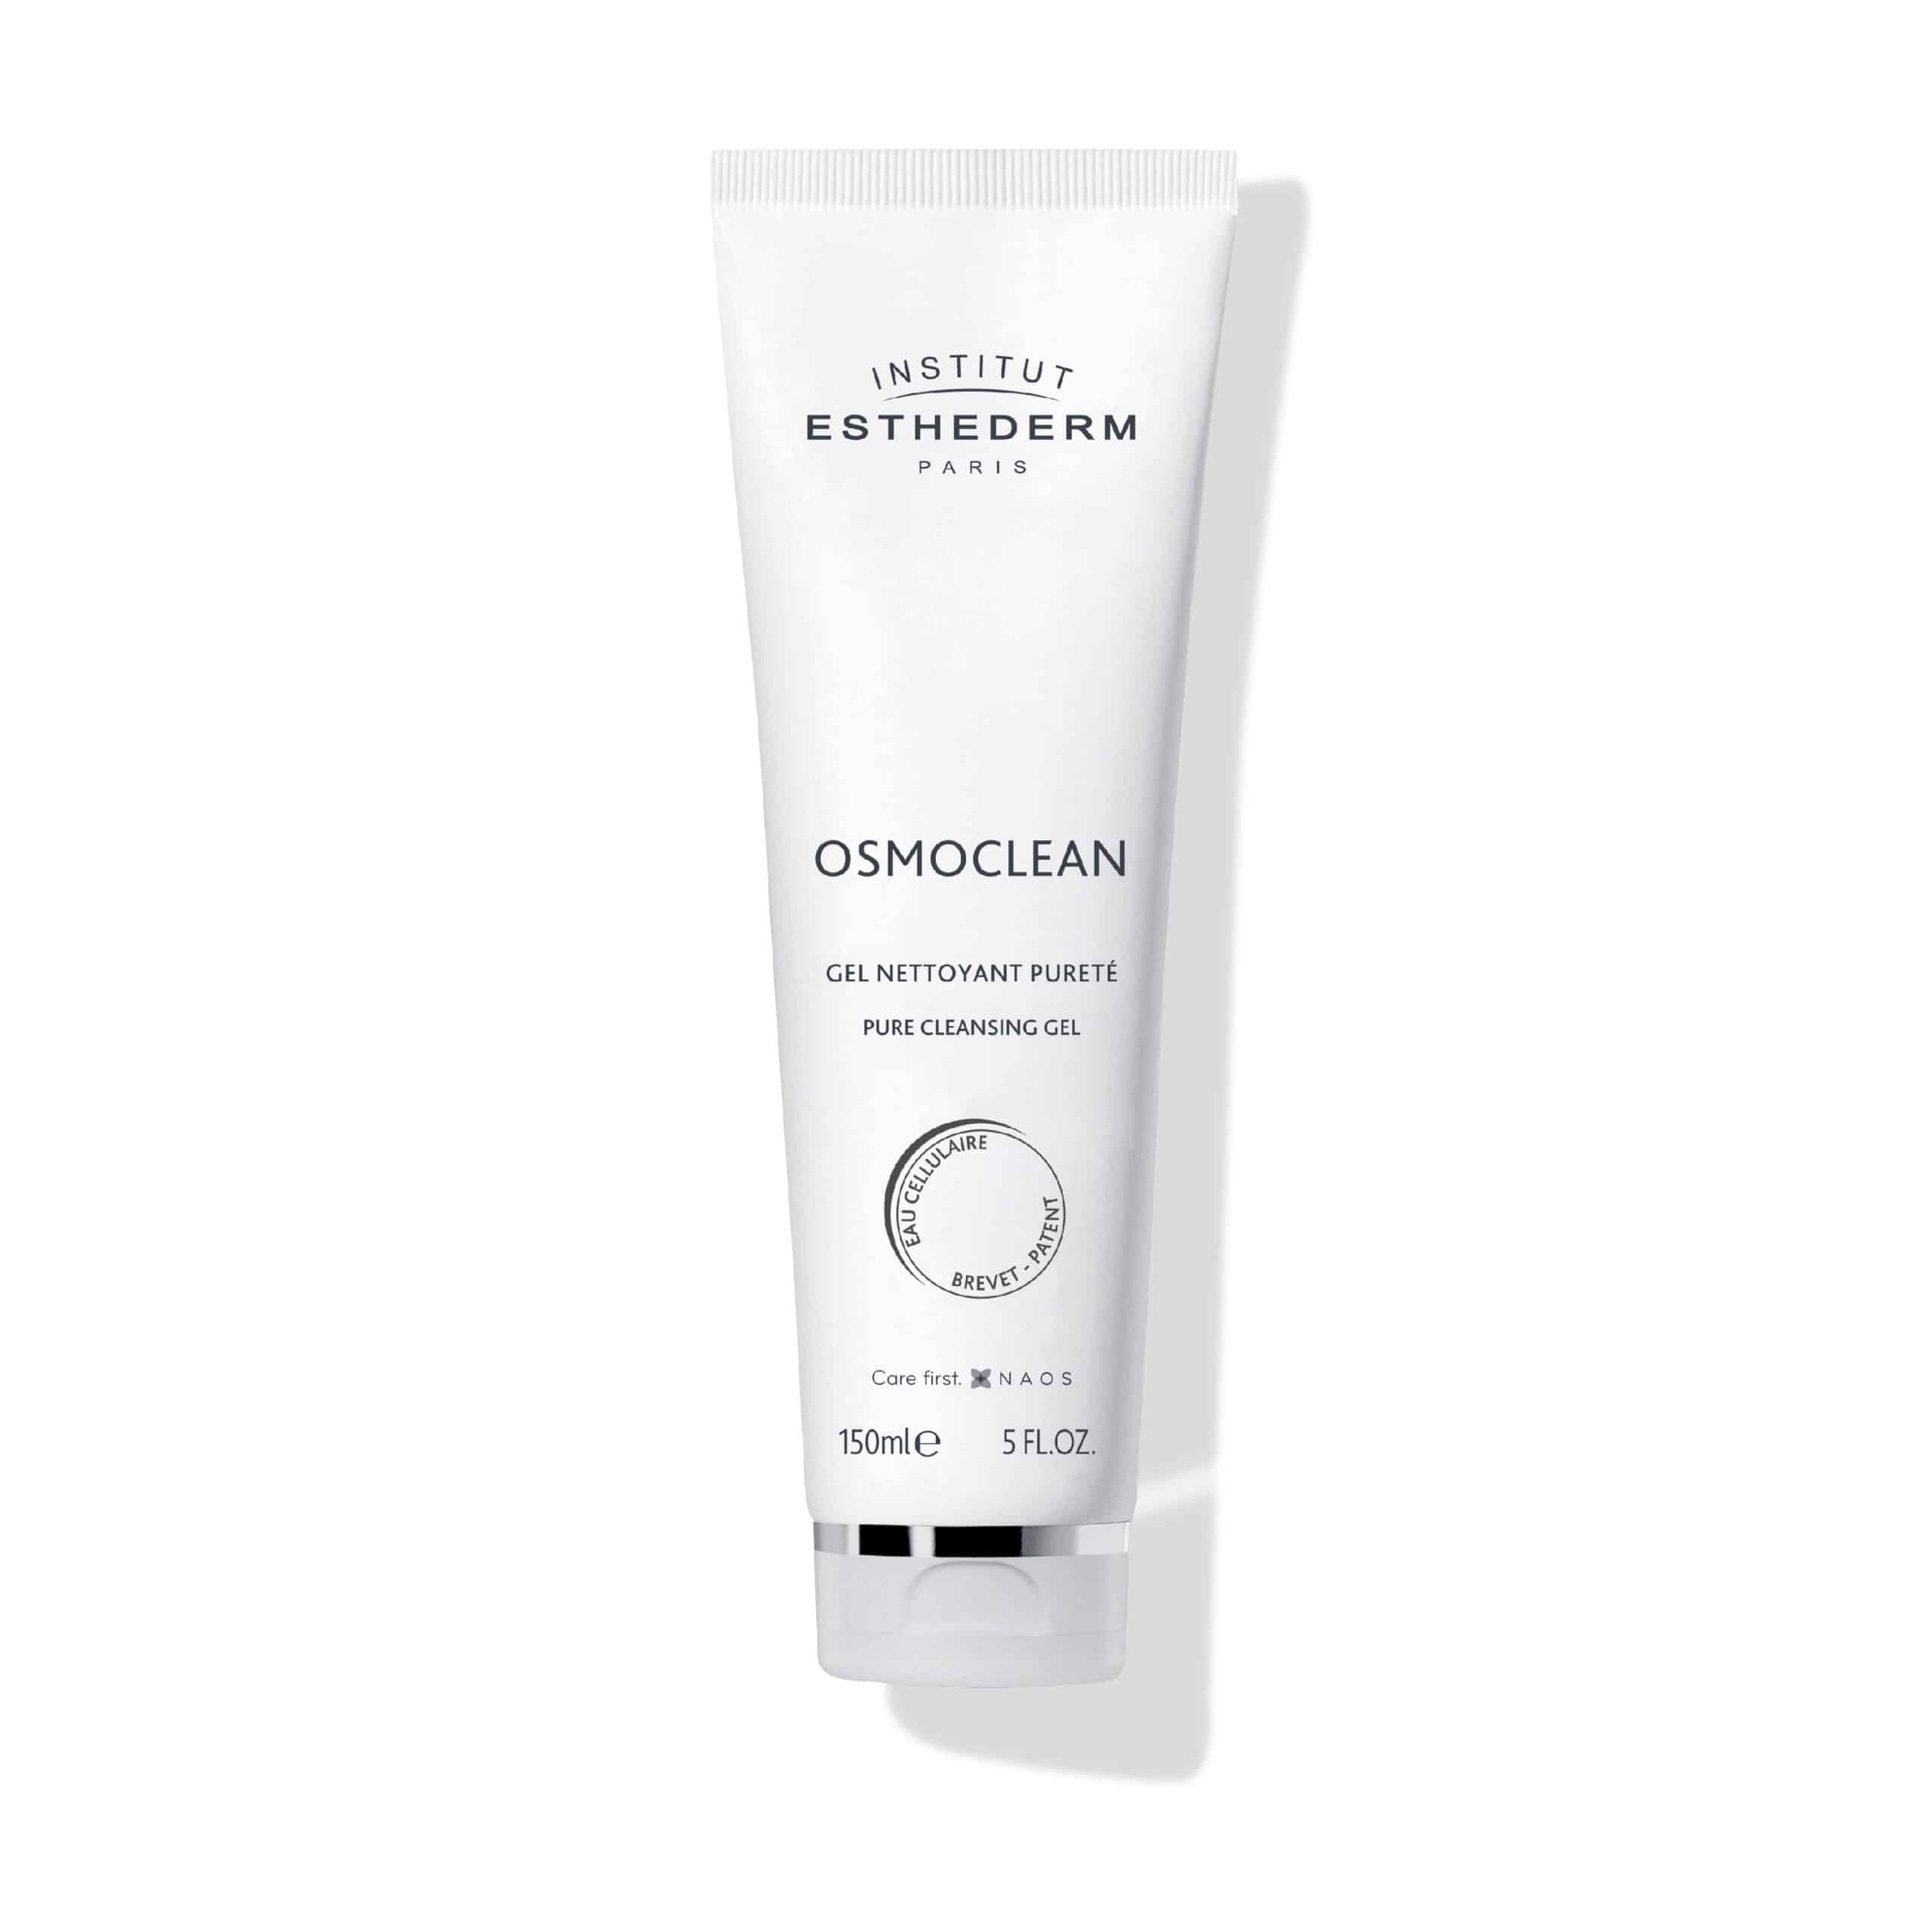 ESTHEDERM product photo, Osmoclean Pure Cleansing Gel 150ml, purifying cleanser, deep cleansing, face wash, all skin types